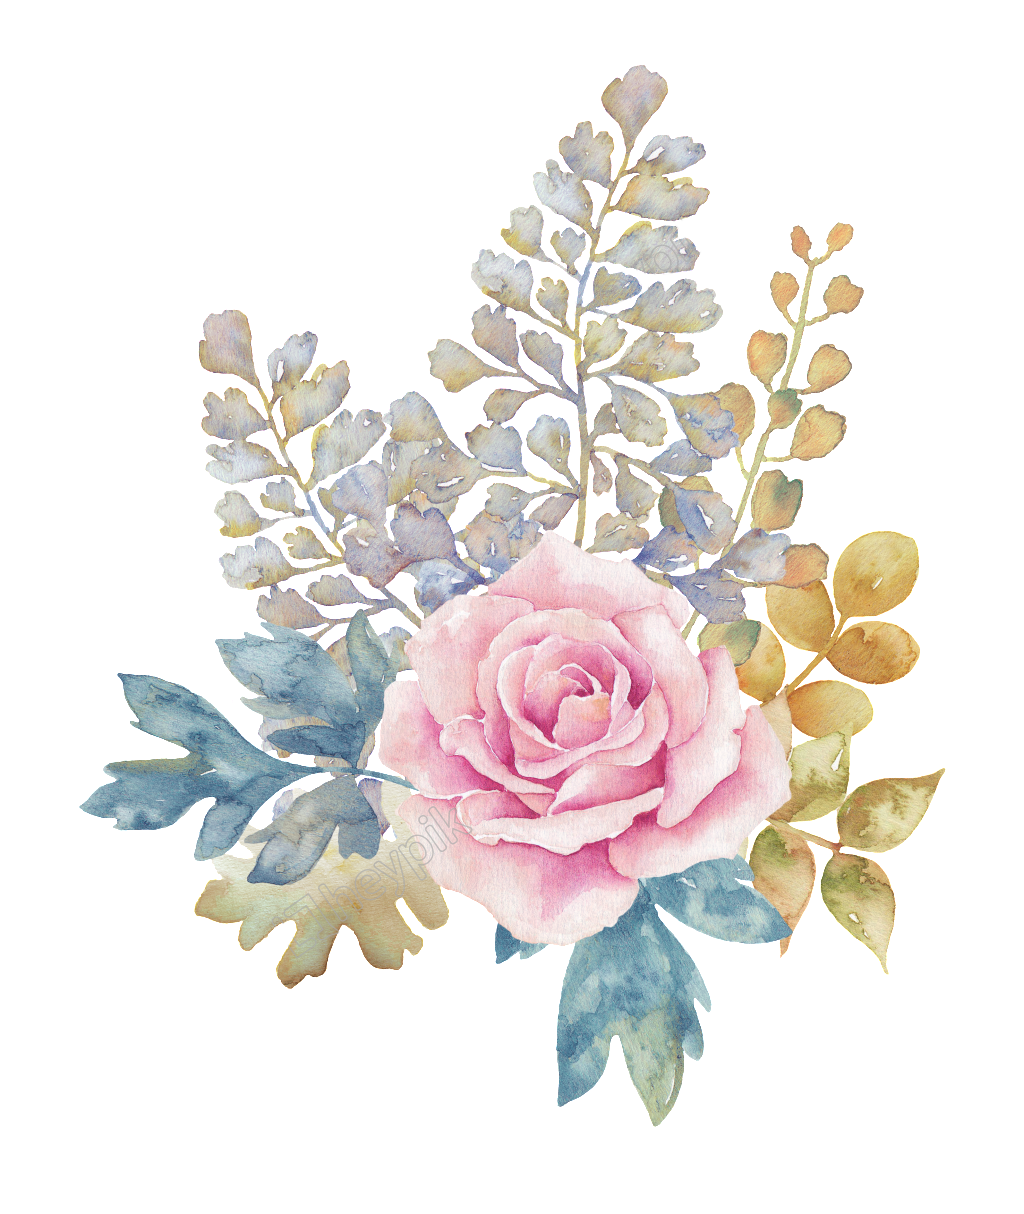 Image Result For Vintage Flowers Watercolor Flower Background Free Watercolor Flowers Watercolor Flowers